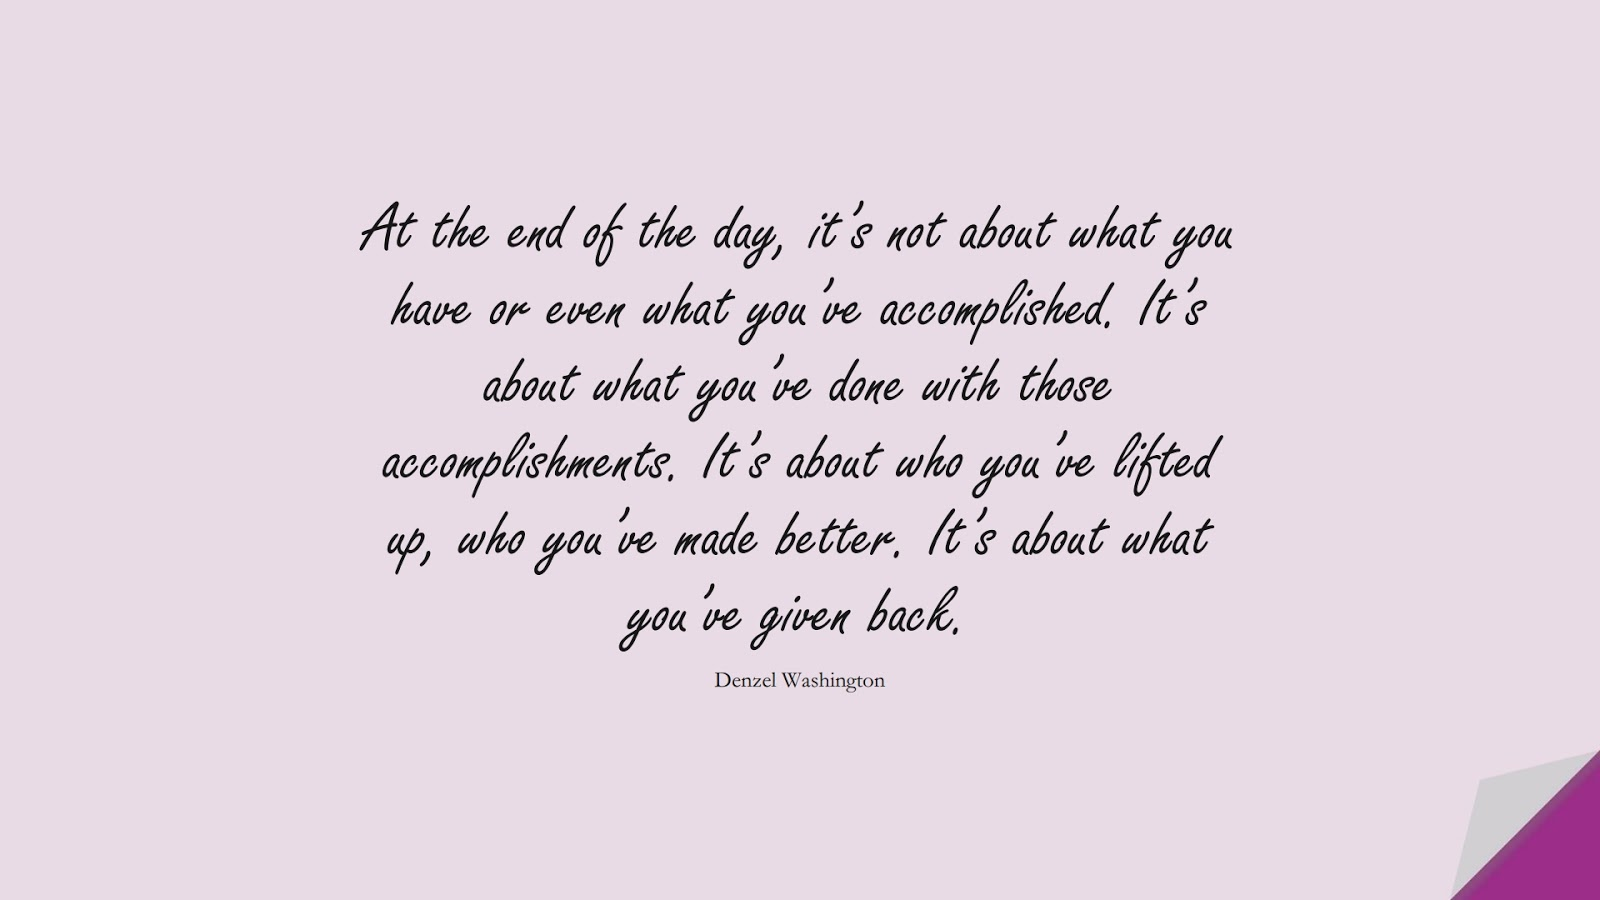 At the end of the day, it's not about what you have or even what you've accomplished. It's about what you've done with those accomplishments. It's about who you've lifted up, who you've made better. It's about what you've given back. (Denzel Washington);  #ChangeQuotes